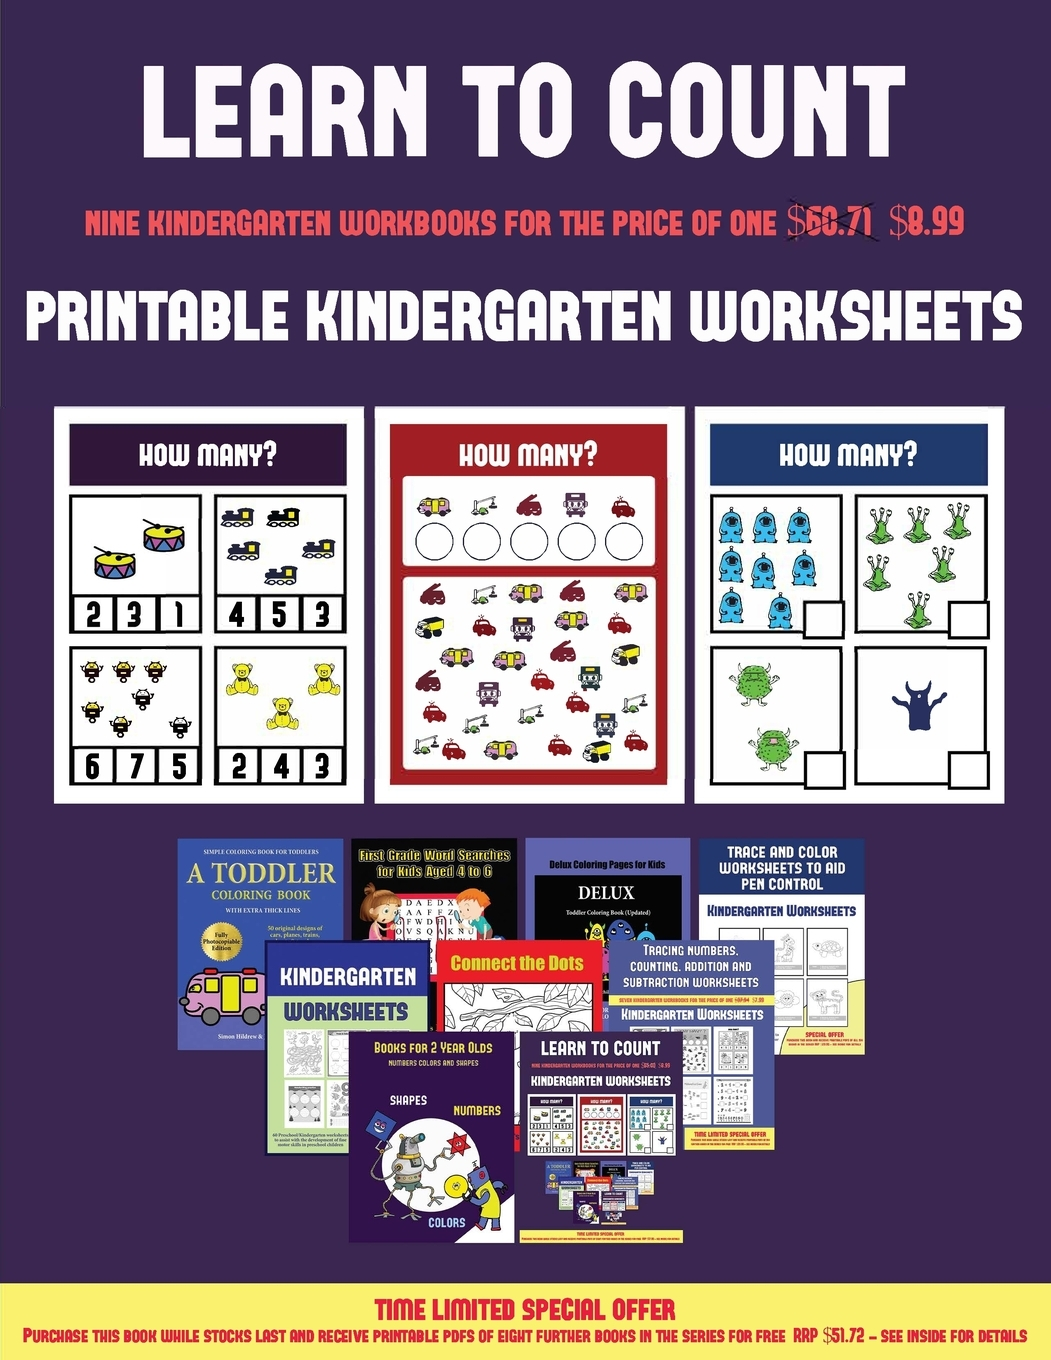 Printable Kindergarten Worksheets Printable Kindergarten